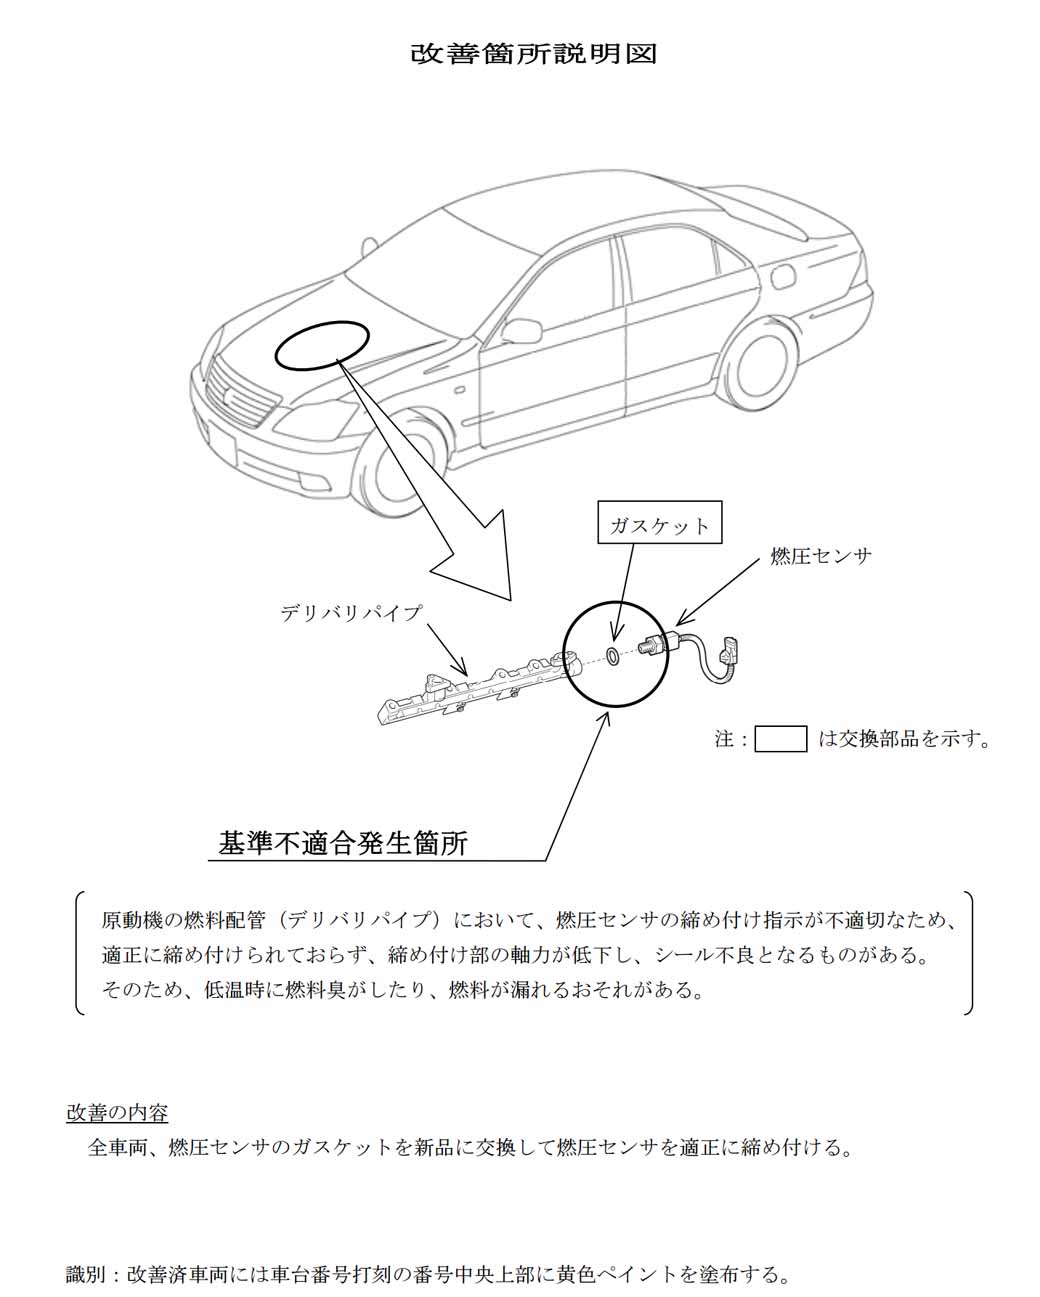 toyota-notification-of-the-crown-other-recall20160413-3